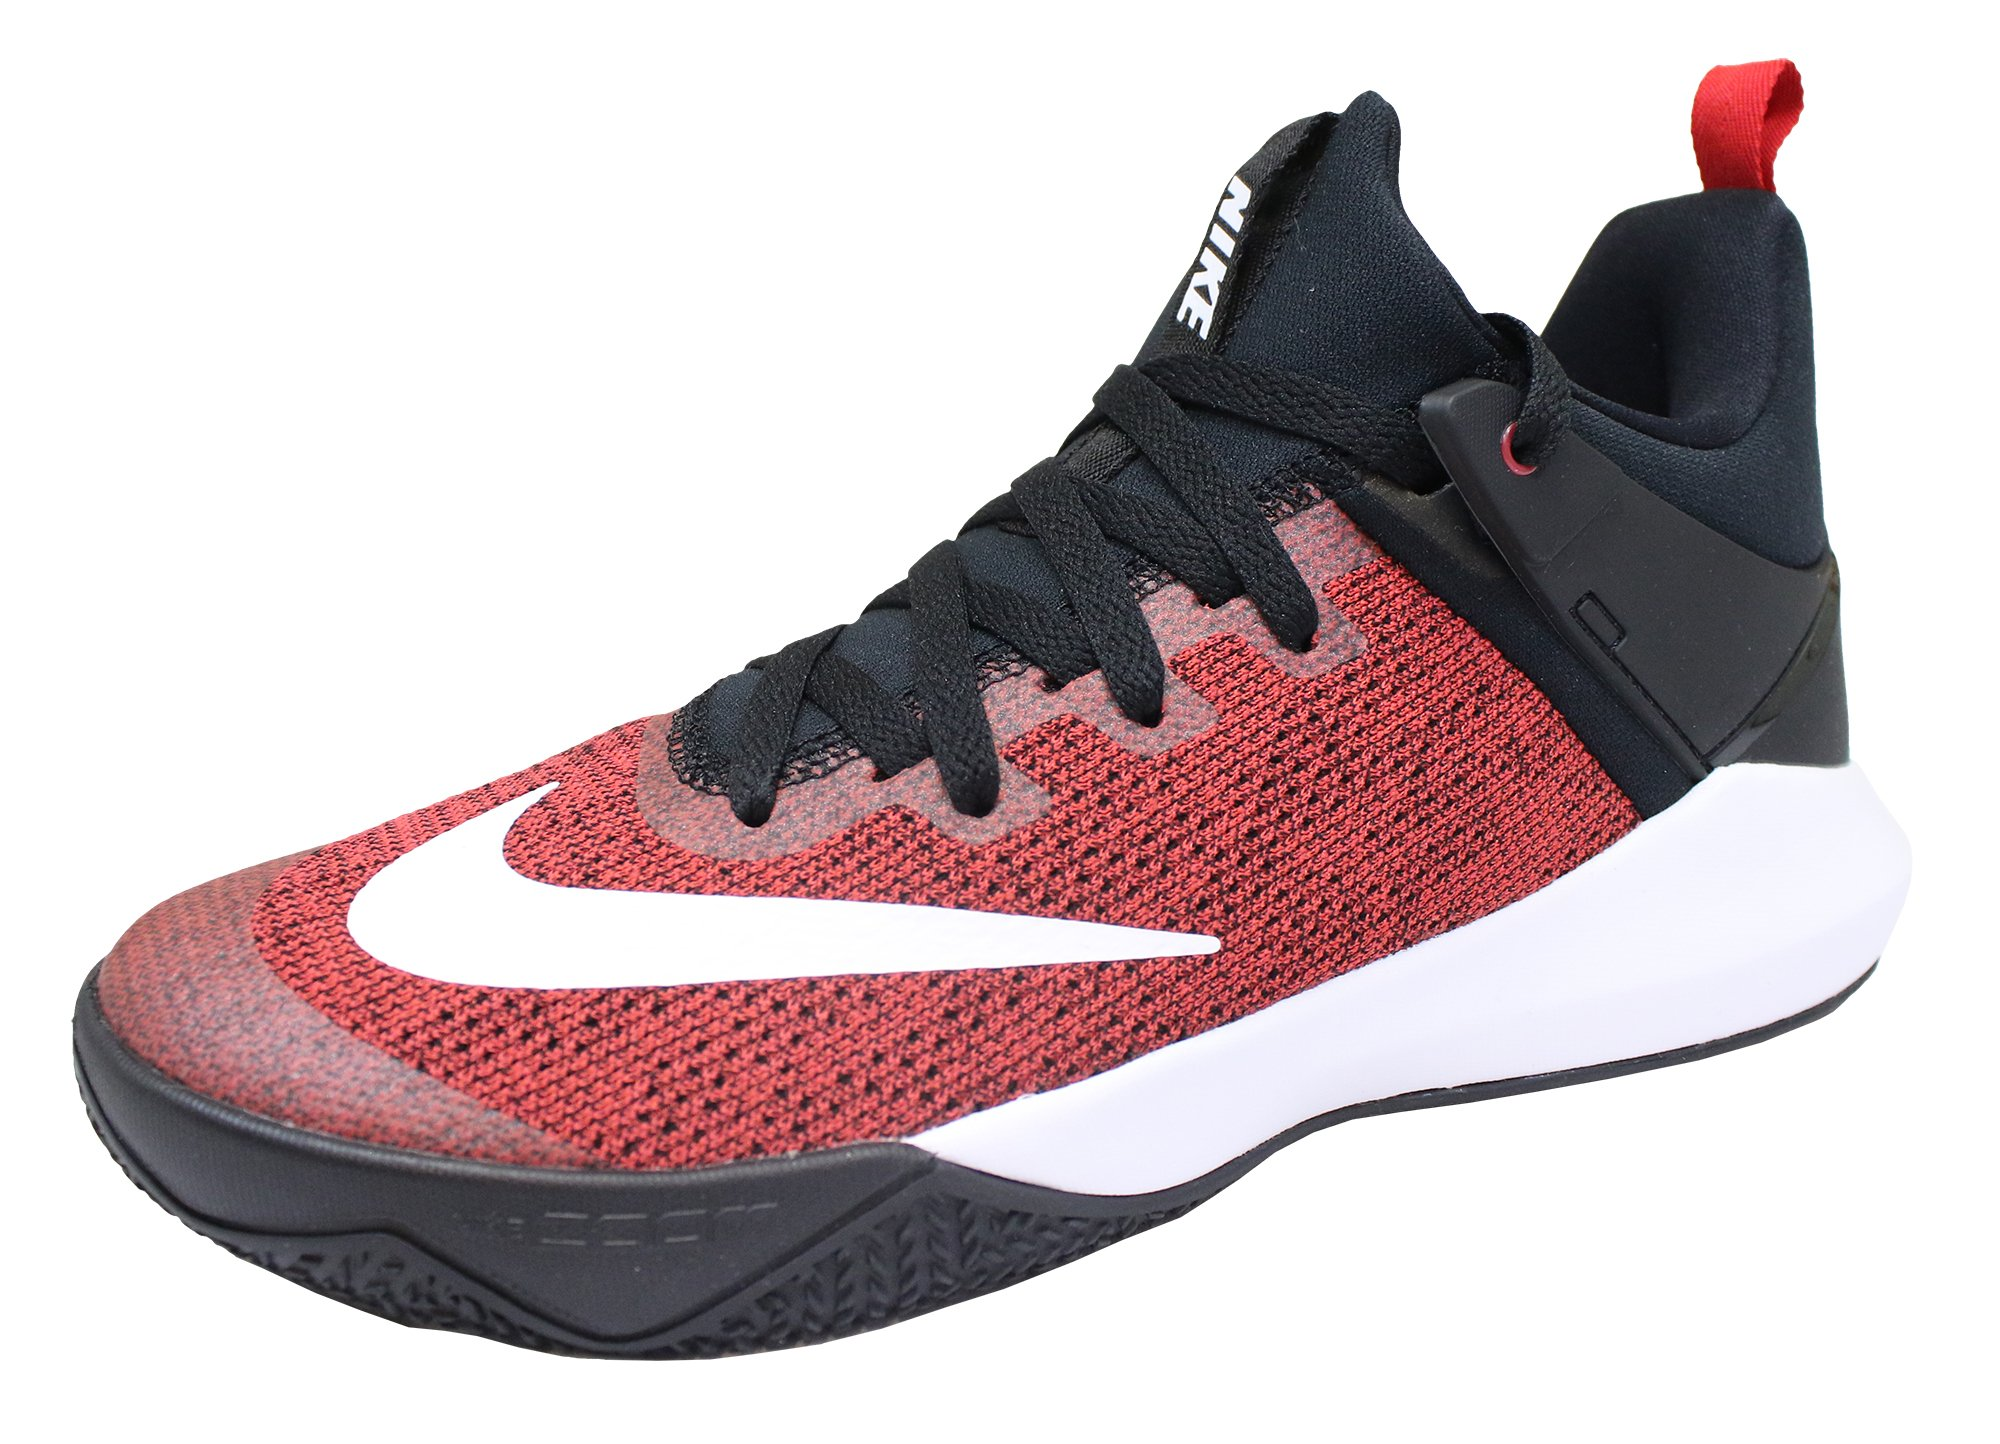 buy popular d84f2 26f00 Galleon - Nike Women s Zoom Shift Basketball Shoe University Red White Black  Size 9 M US